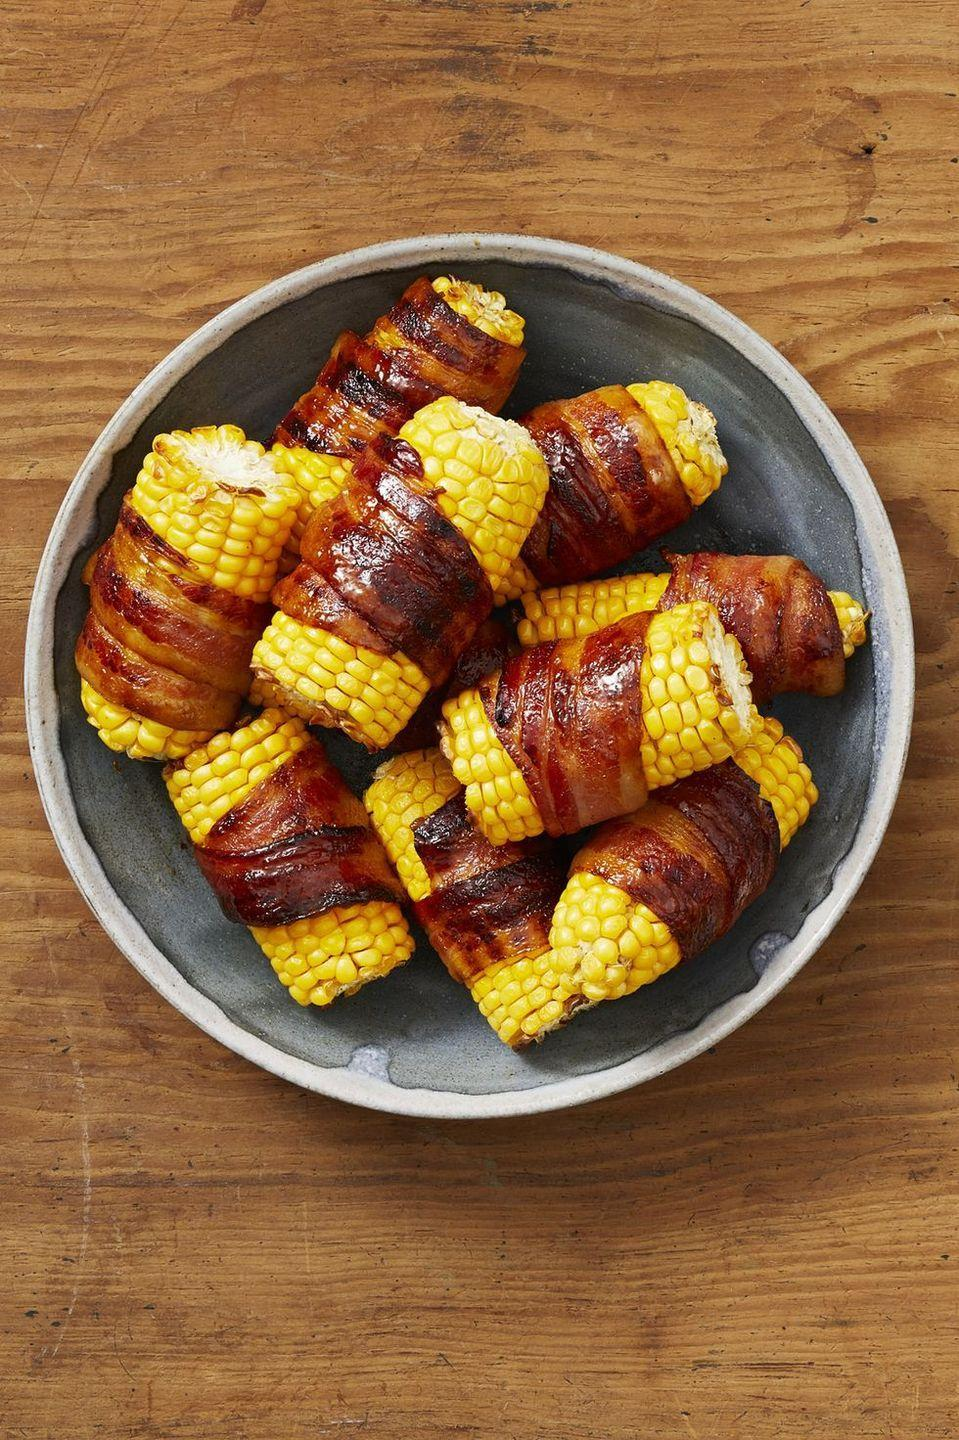 """<p>You can wrap almost anything in bacon and it will taste delicious. Serve these cobs at your next BBQ, picnic, or weeknight dinner. </p><p><a href=""""https://www.thepioneerwoman.com/food-cooking/recipes/a32905619/bacon-wrapped-corn-on-the-cob-recipe/"""" rel=""""nofollow noopener"""" target=""""_blank"""" data-ylk=""""slk:Get Ree's recipe."""" class=""""link rapid-noclick-resp""""><strong>Get Ree's recipe.</strong> </a></p><p><a class=""""link rapid-noclick-resp"""" href=""""https://go.redirectingat.com?id=74968X1596630&url=https%3A%2F%2Fwww.walmart.com%2Fsearch%2F%3Fquery%3Dpioneer%2Bwoman%2Bcooking%2Butensils&sref=https%3A%2F%2Fwww.thepioneerwoman.com%2Ffood-cooking%2Fmeals-menus%2Fg37350610%2Fvegetable-side-dishes%2F"""" rel=""""nofollow noopener"""" target=""""_blank"""" data-ylk=""""slk:SHOP COOKING UTENSILS"""">SHOP COOKING UTENSILS</a></p>"""